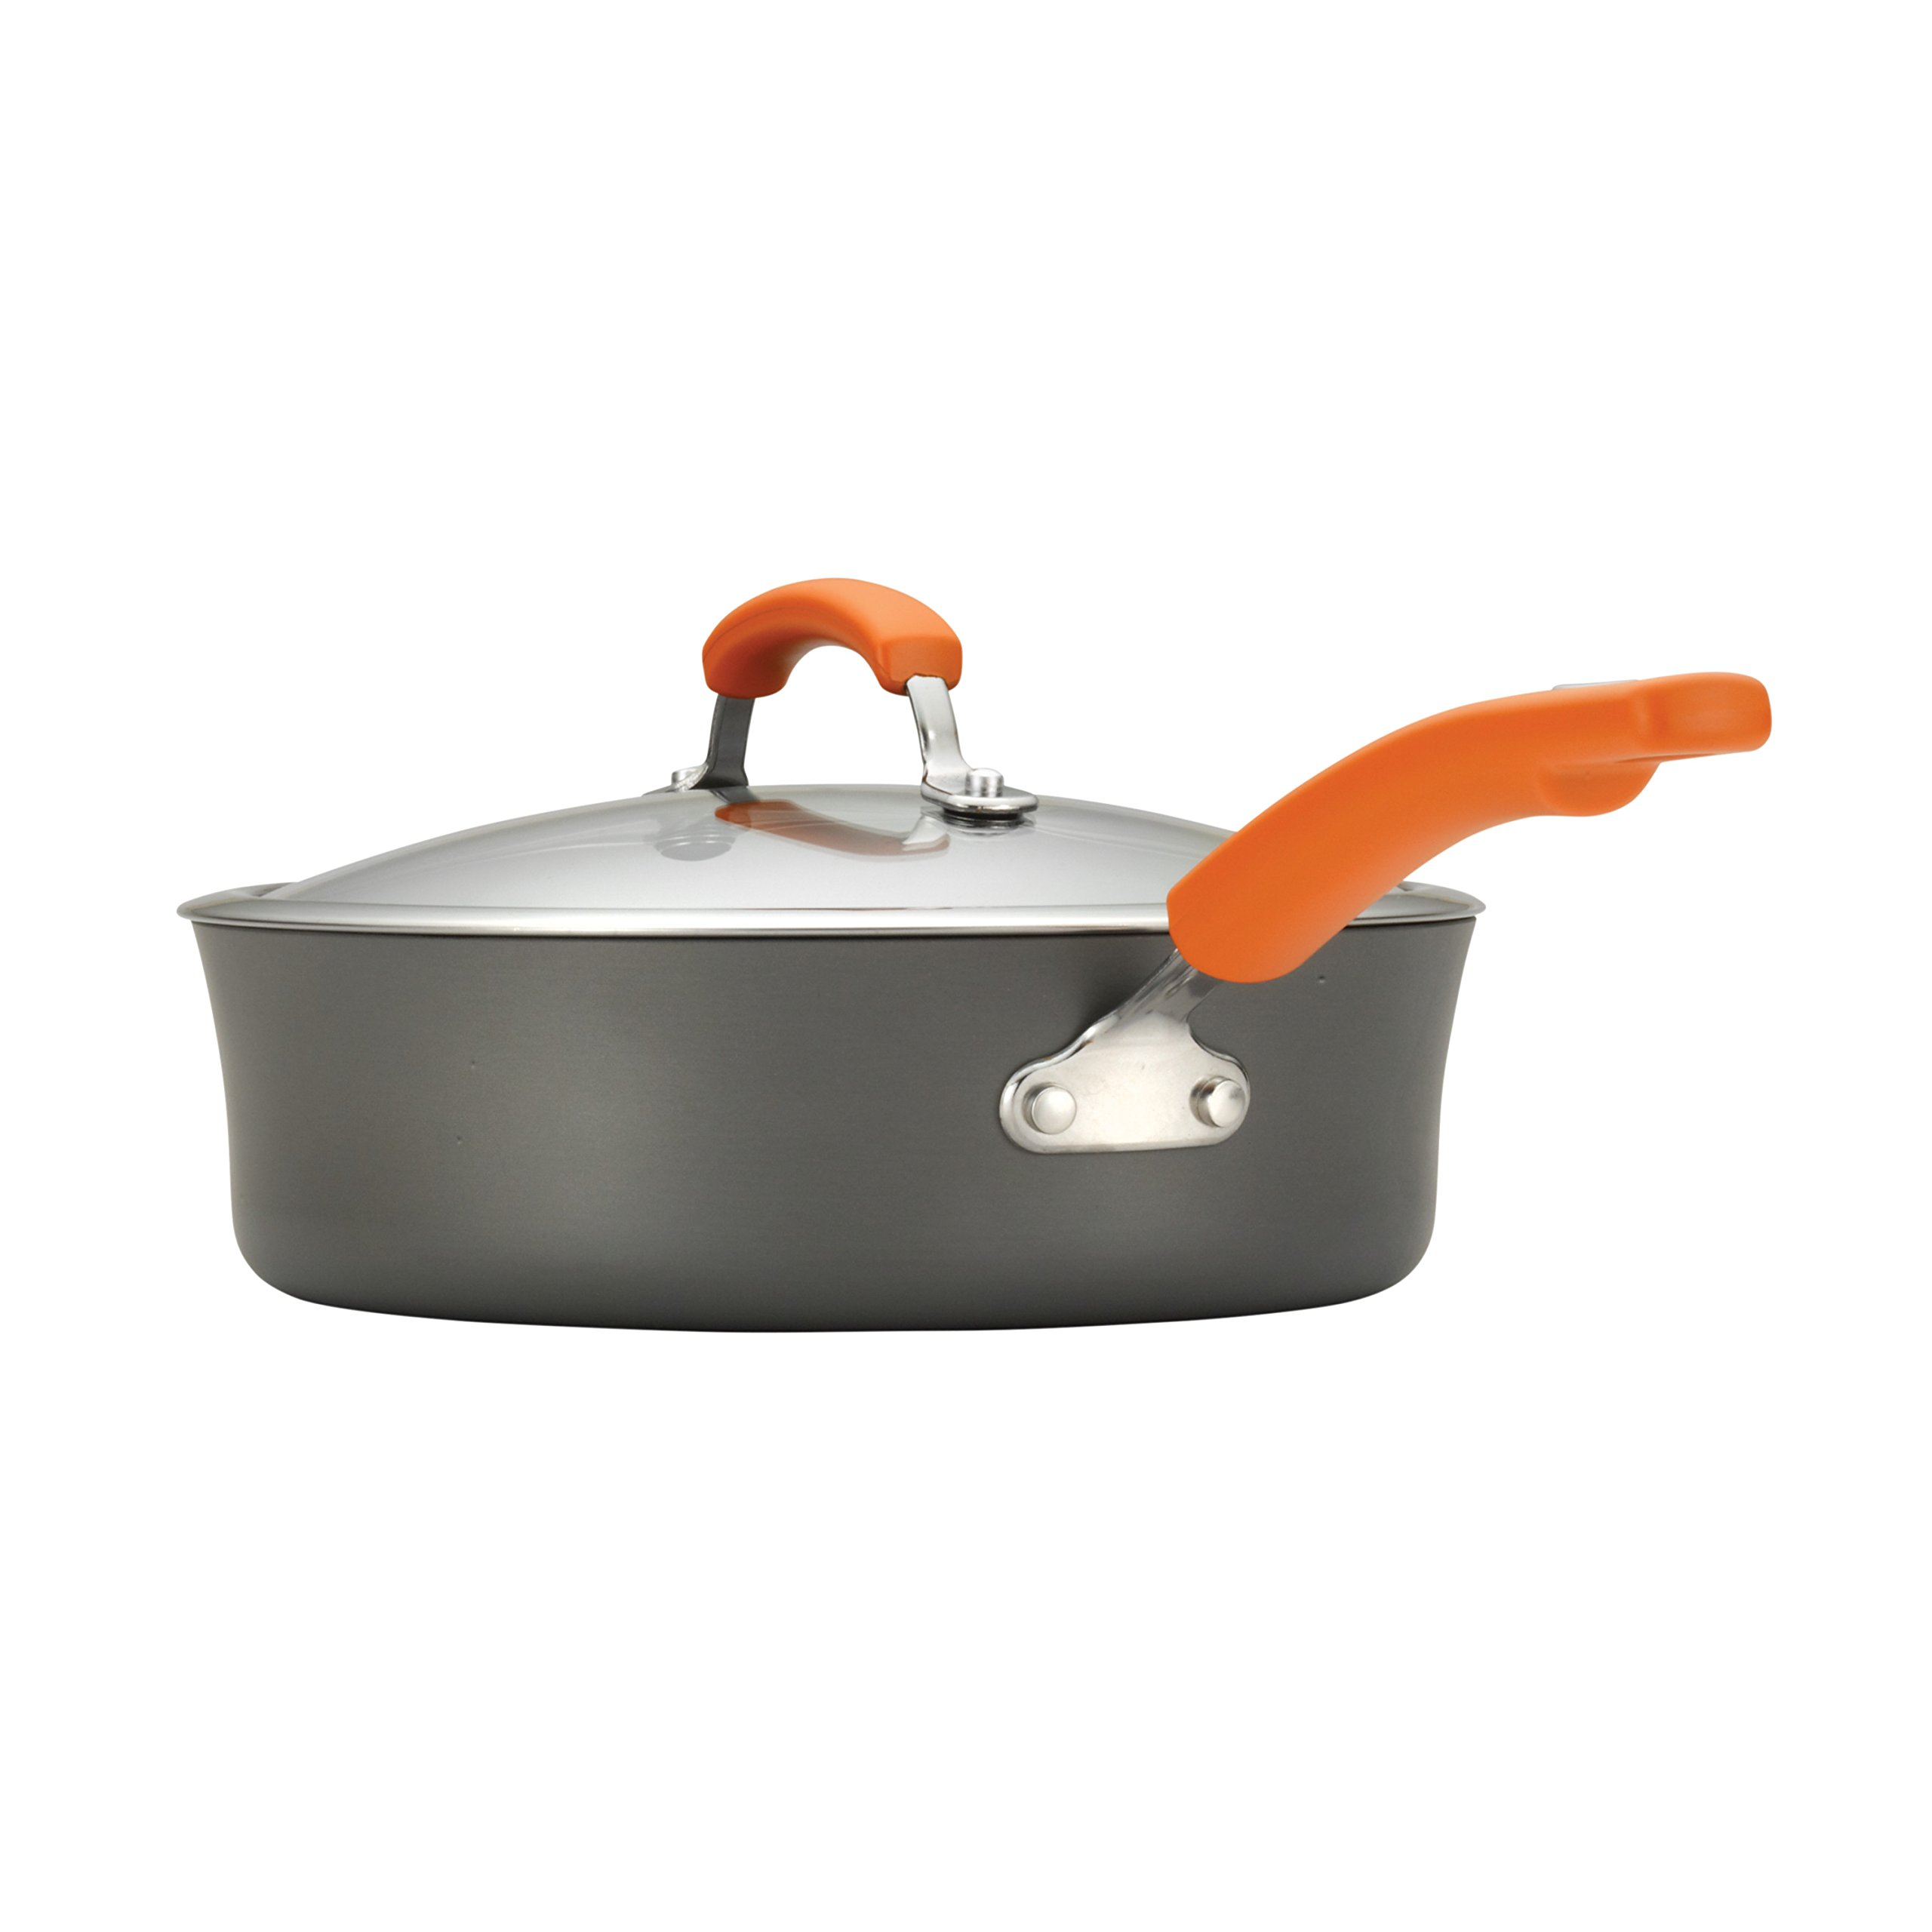 Rachael Ray Hard Anodized II Nonstick Dishwasher Safe 10-Piece Cookware Set, Orange by Rachael Ray (Image #6)